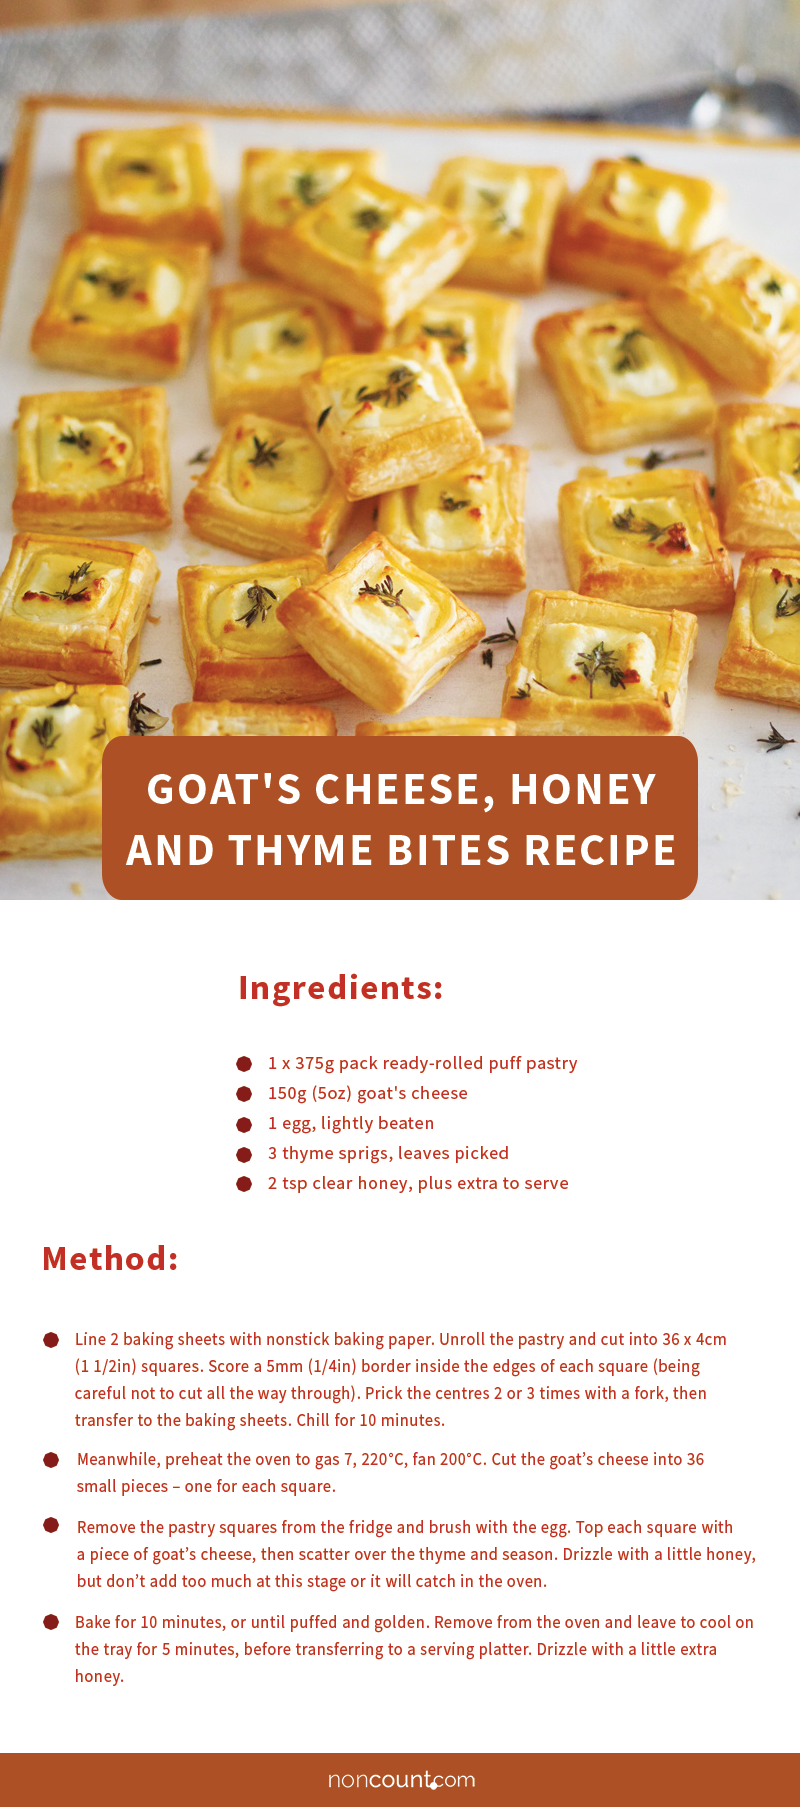 Goat's Cheese, Honey and Thyme Bites Recipe